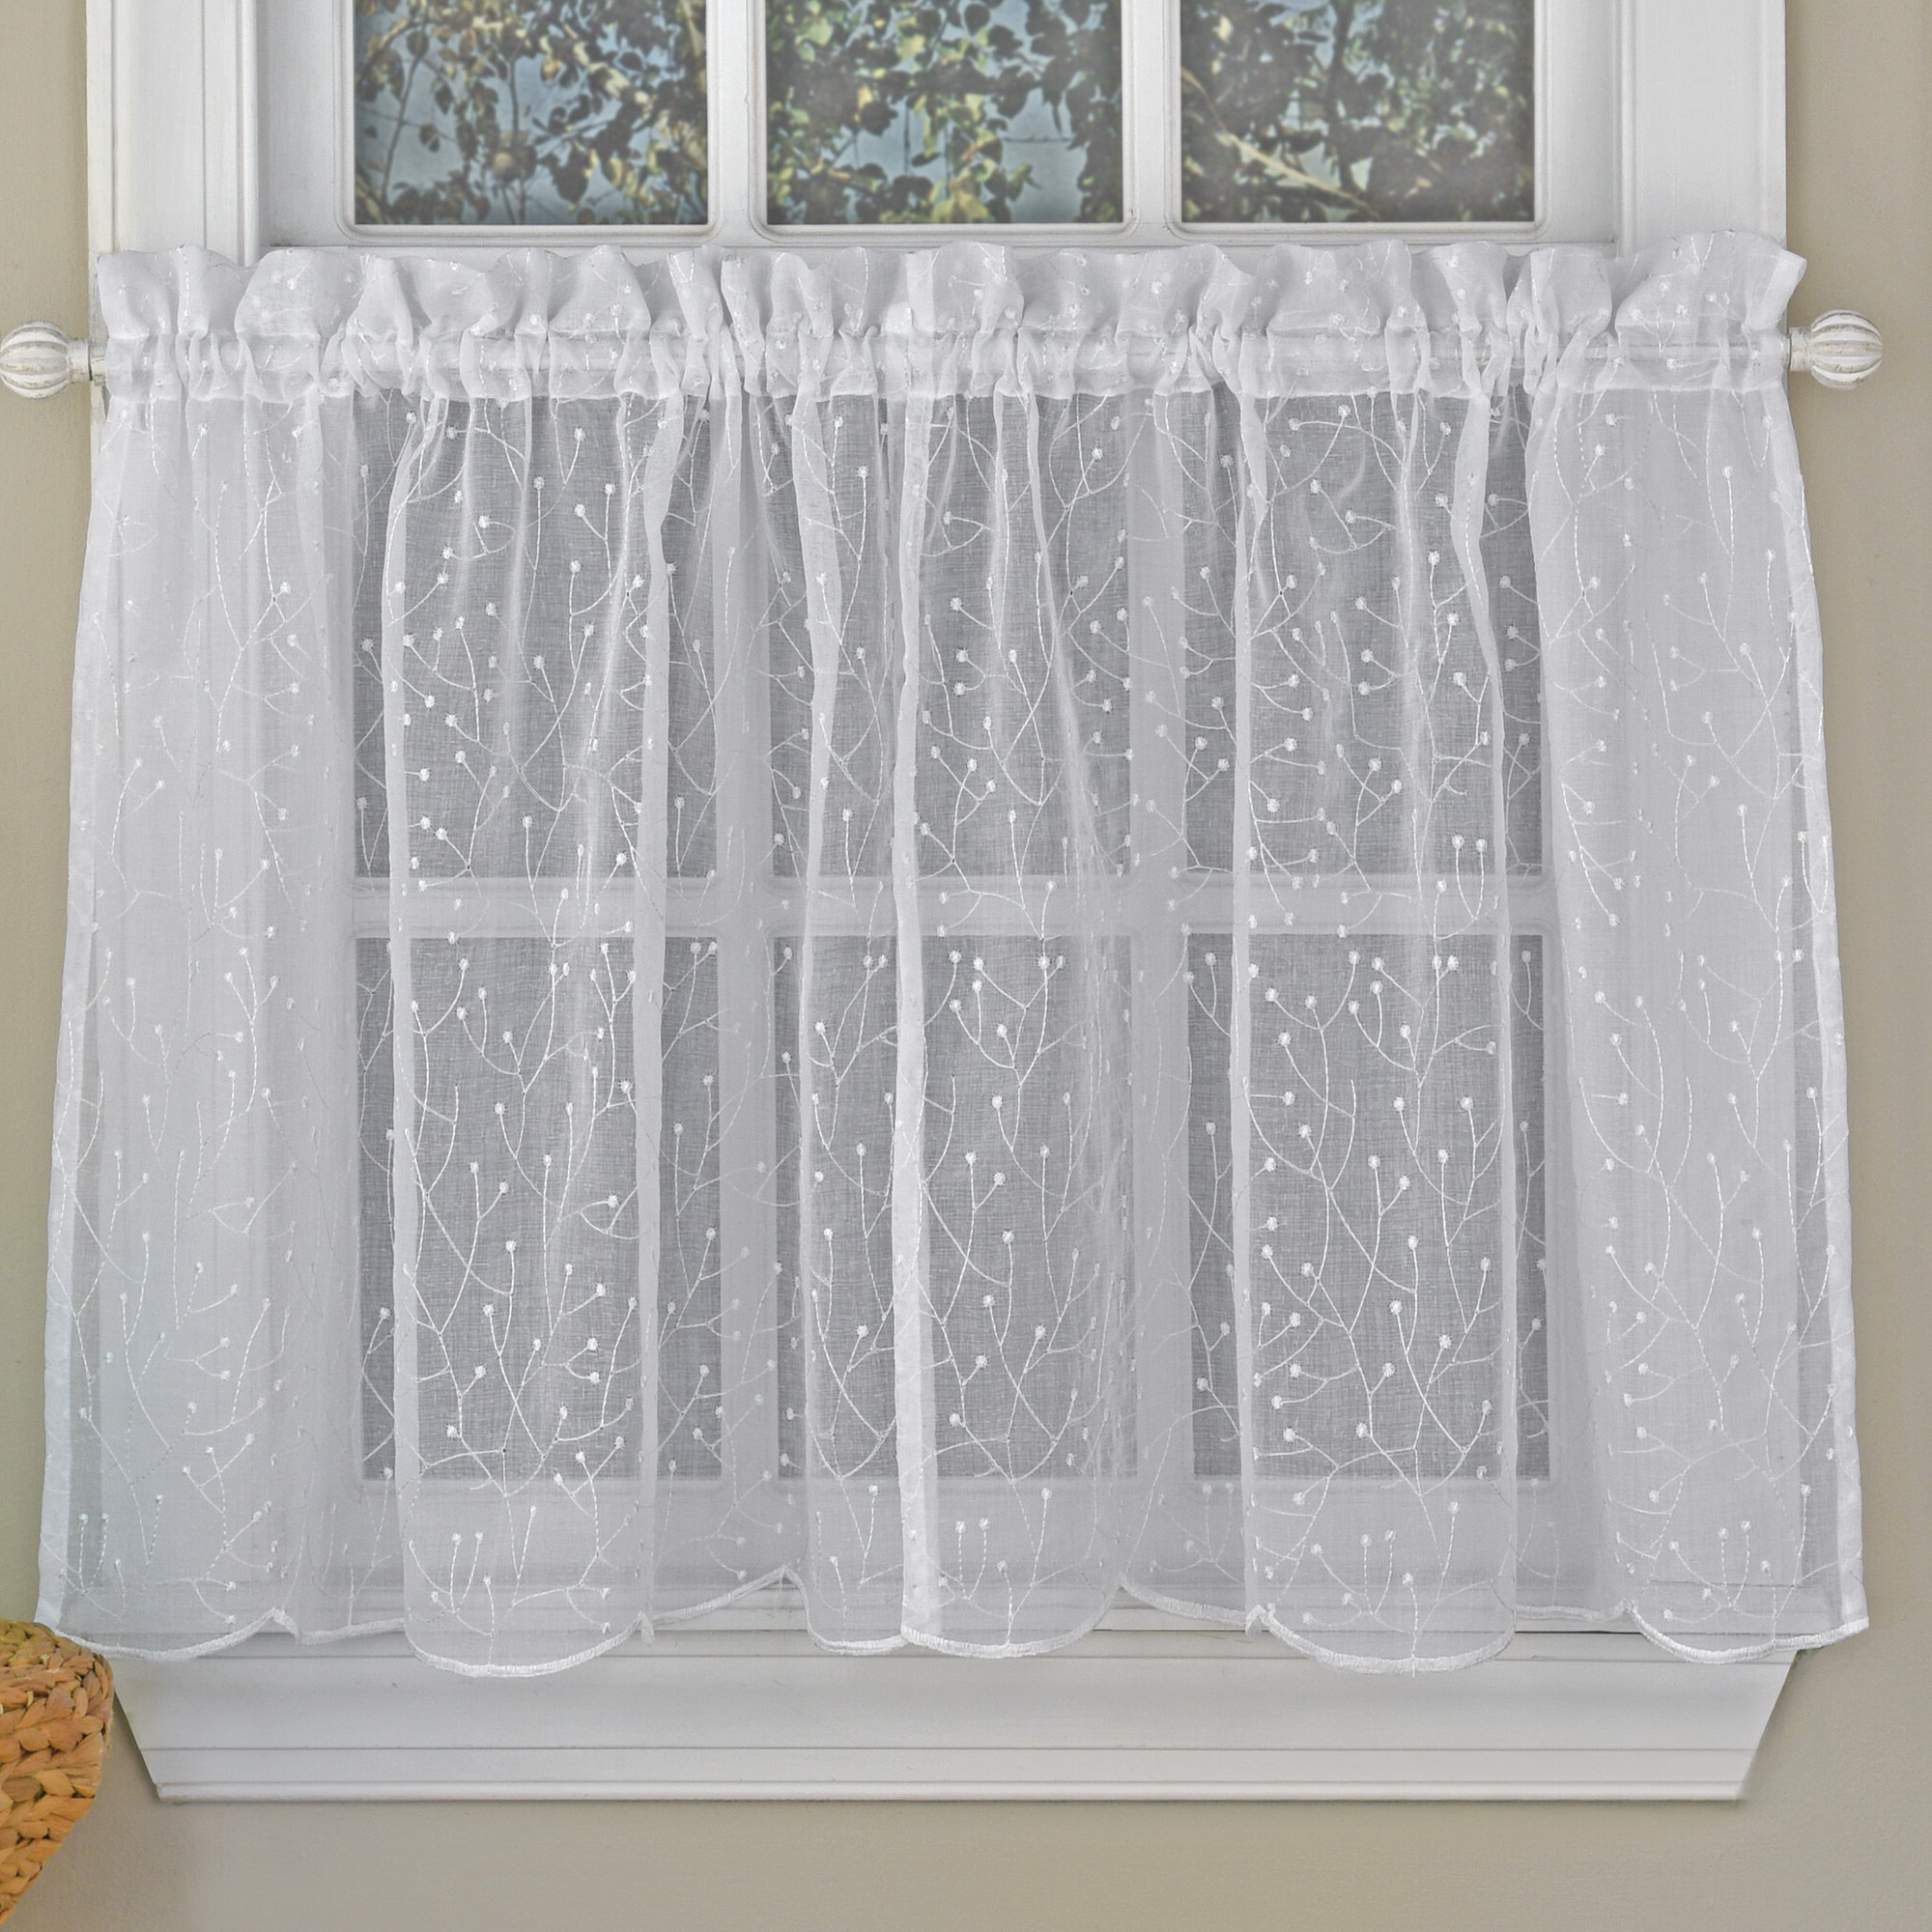 "2020 Floral Embroidered Sheer Kitchen Curtain Tiers, Swags And Valances Pertaining To Howarth Floral Spray Semi Sheer Kitchen 55"" Window Valance (View 19 of 20)"